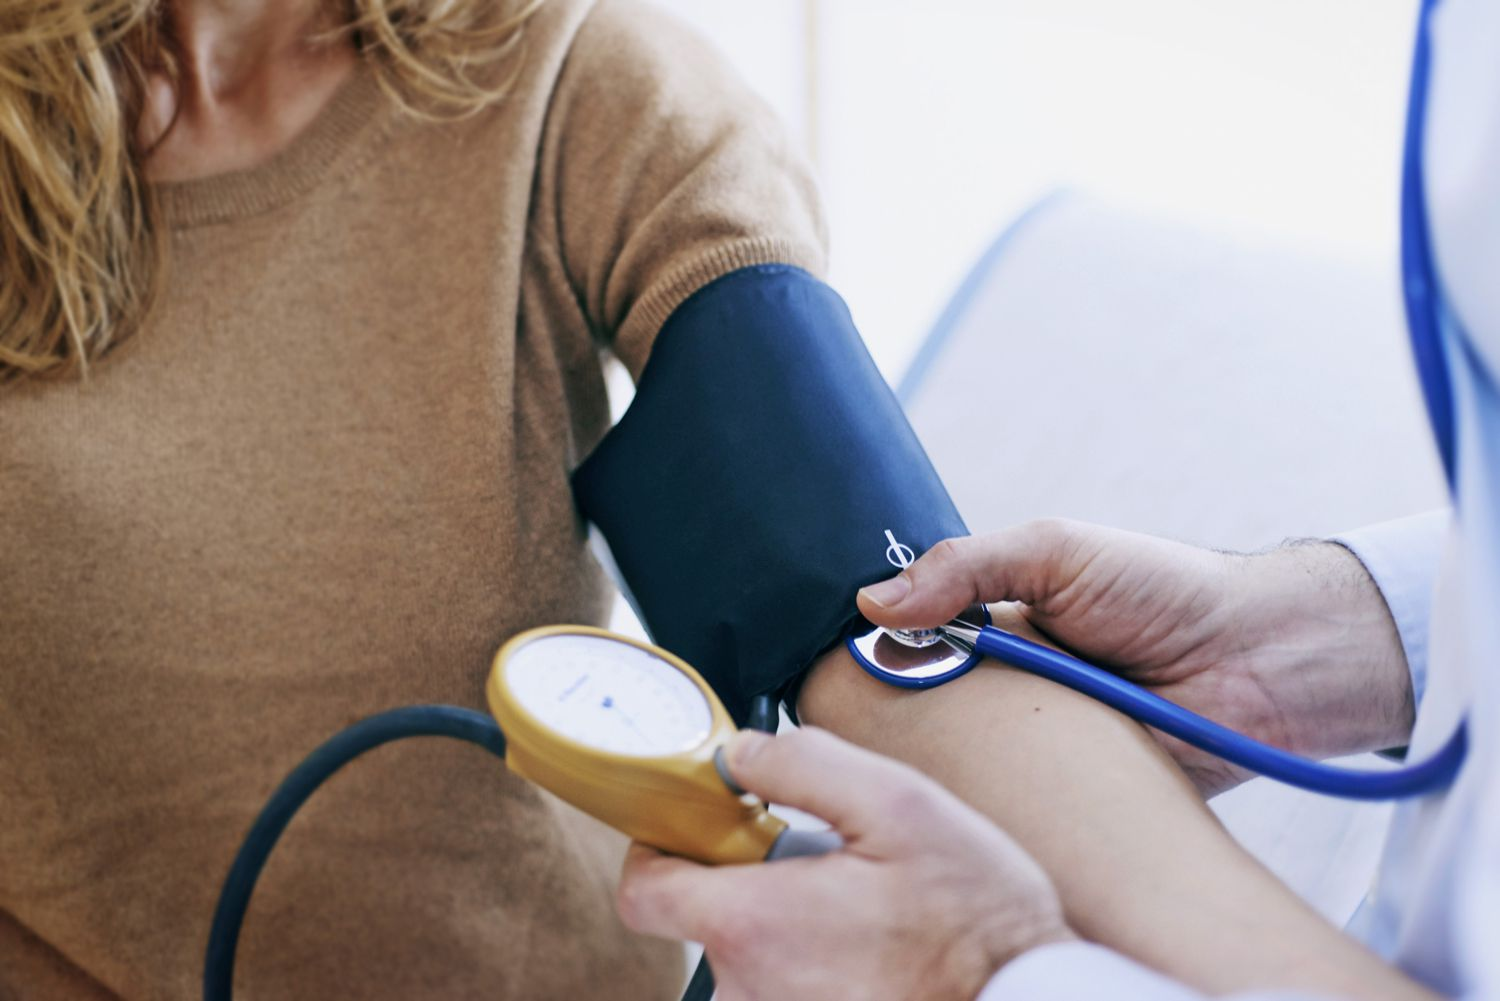 Why Do You Need A Stethoscope When Taking Blood Pressure?